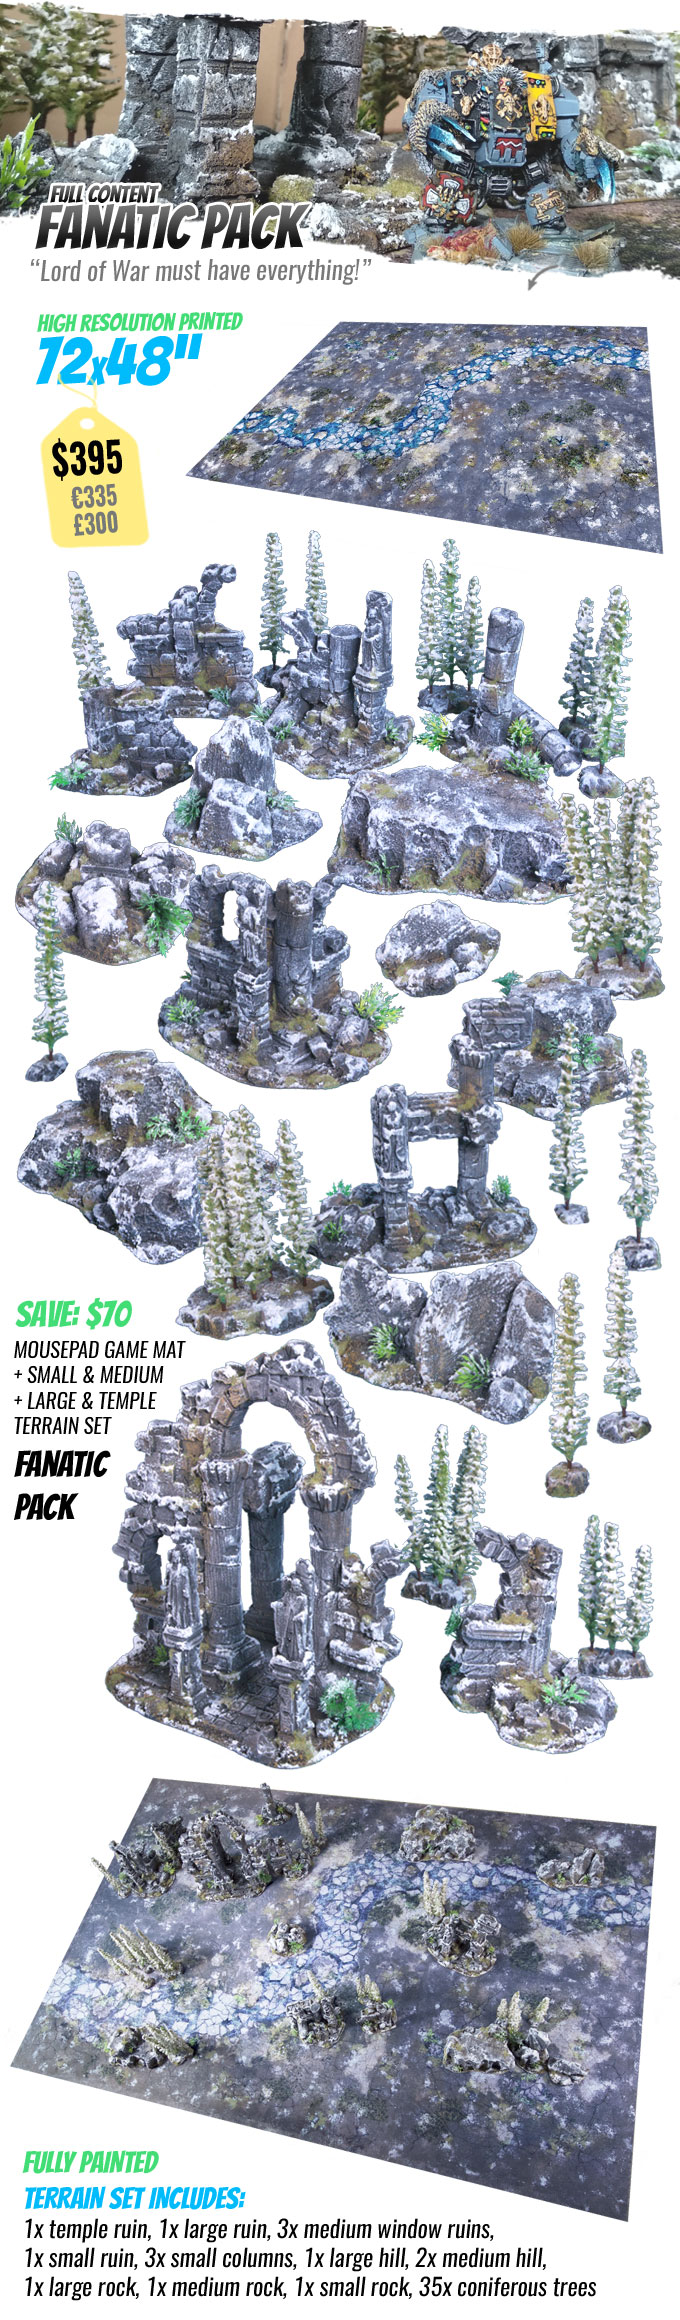 FANATIC PACK: StudioLevel GÅRDBÛK Shrine Terrain